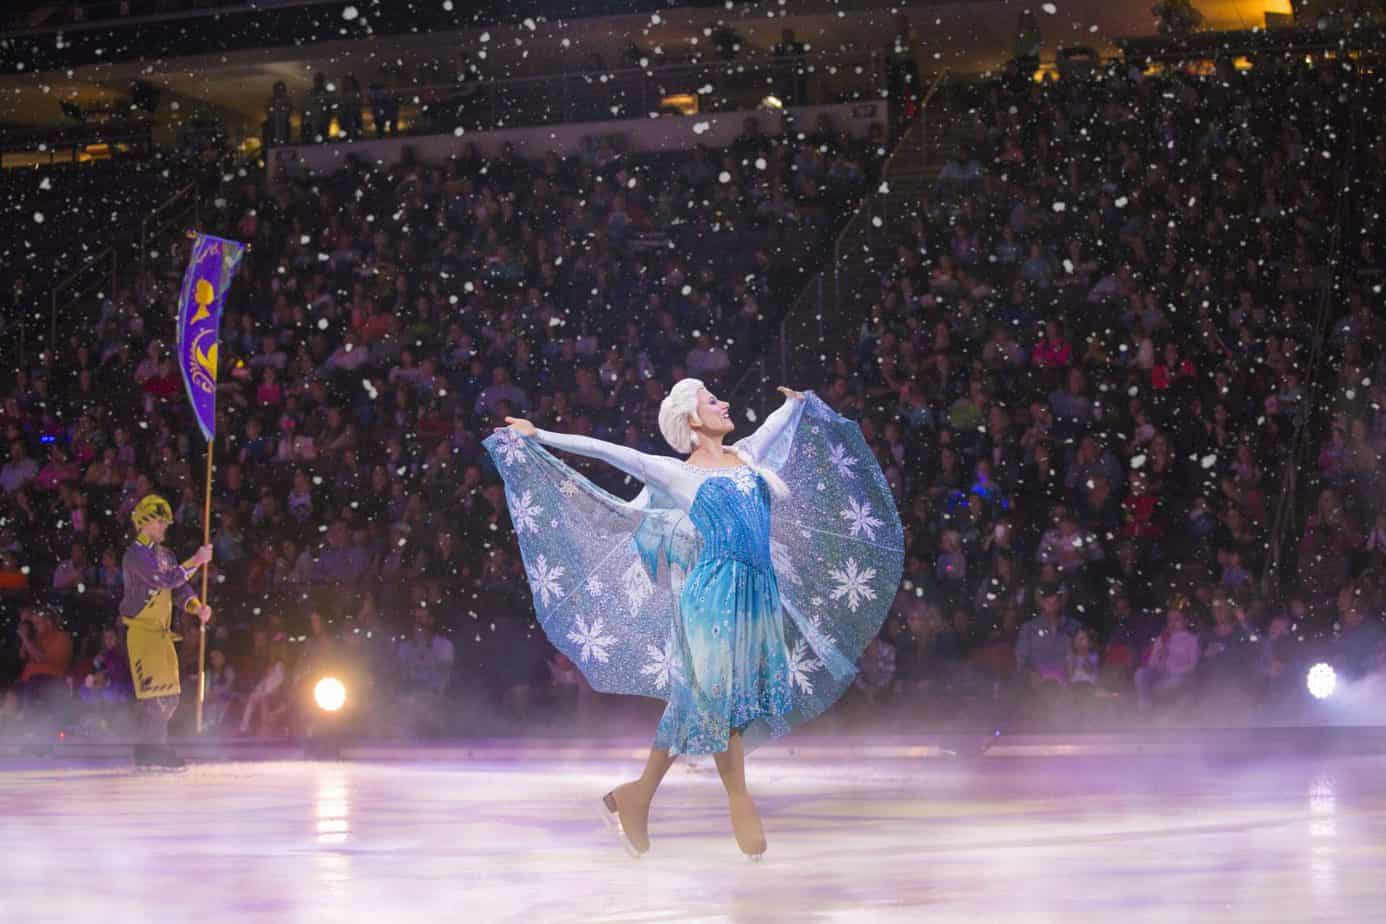 Elsa in the snow at Disney on ice